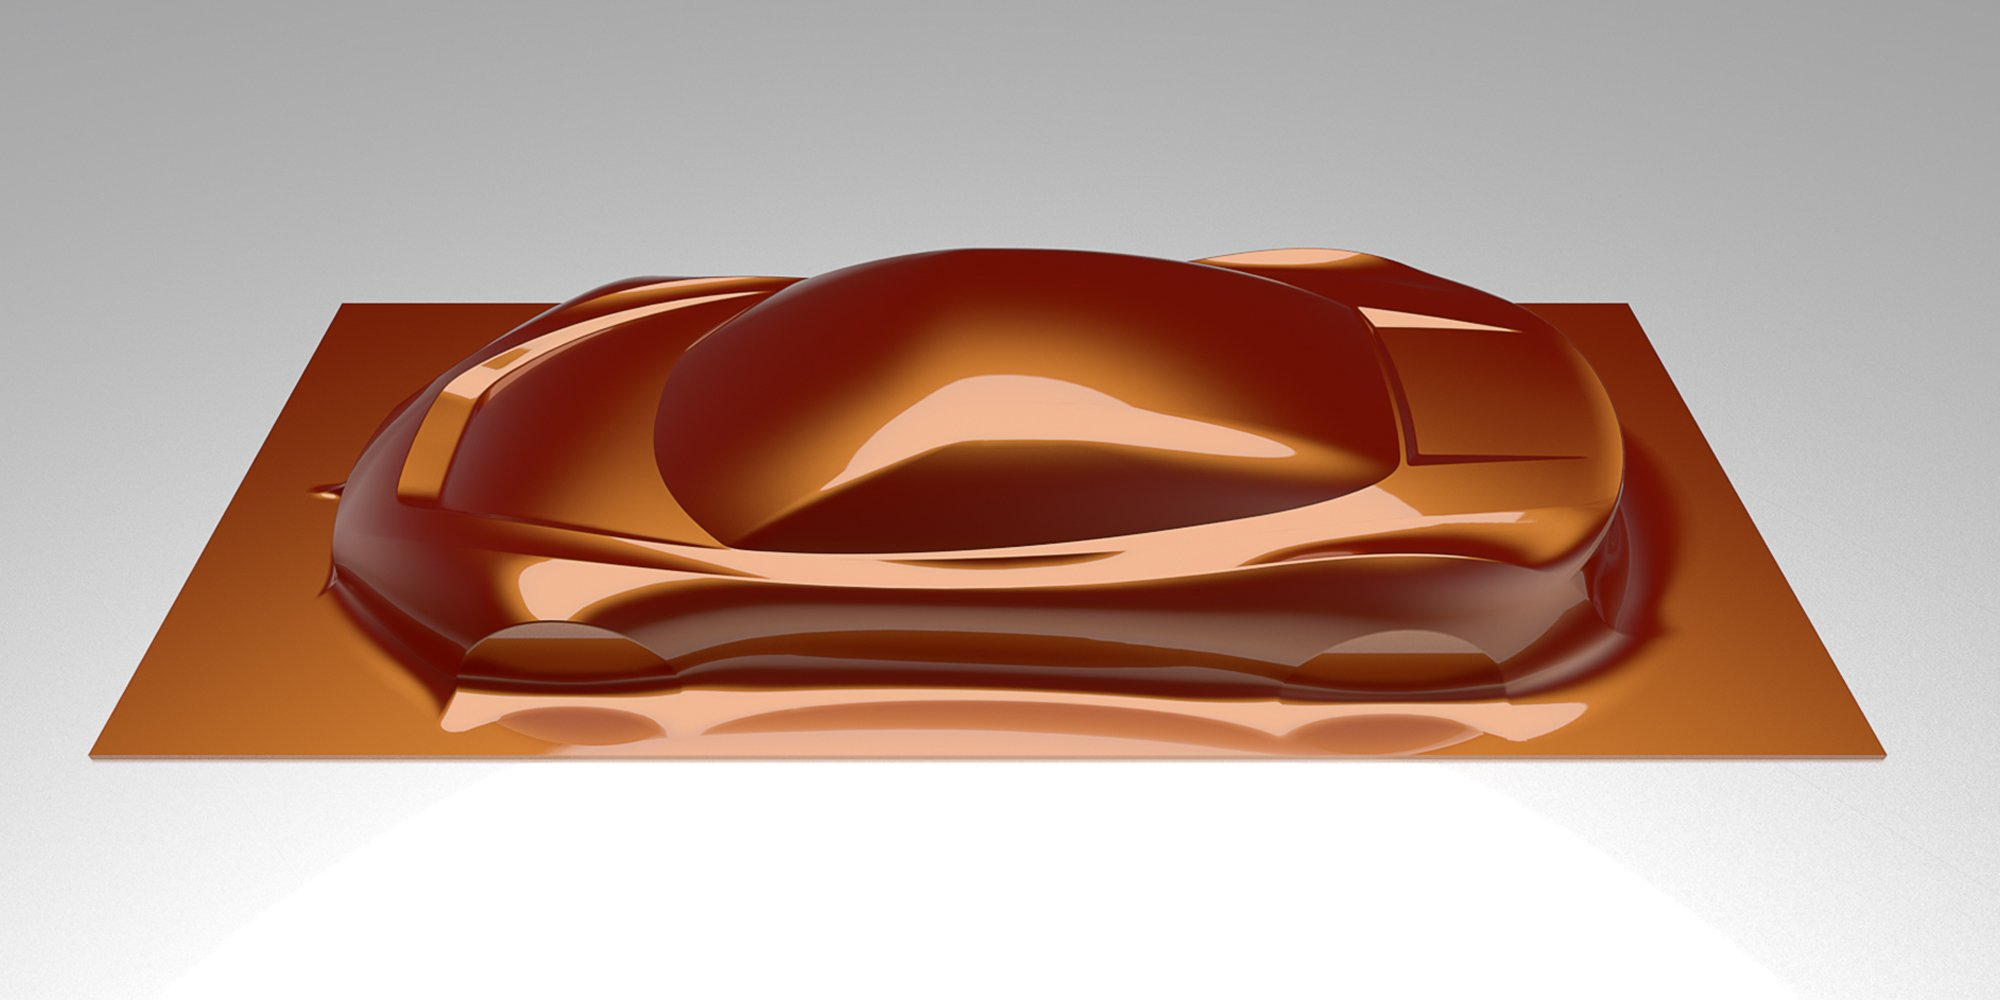 innovative-digital-amsterdam-spyker-cars-color-models-03